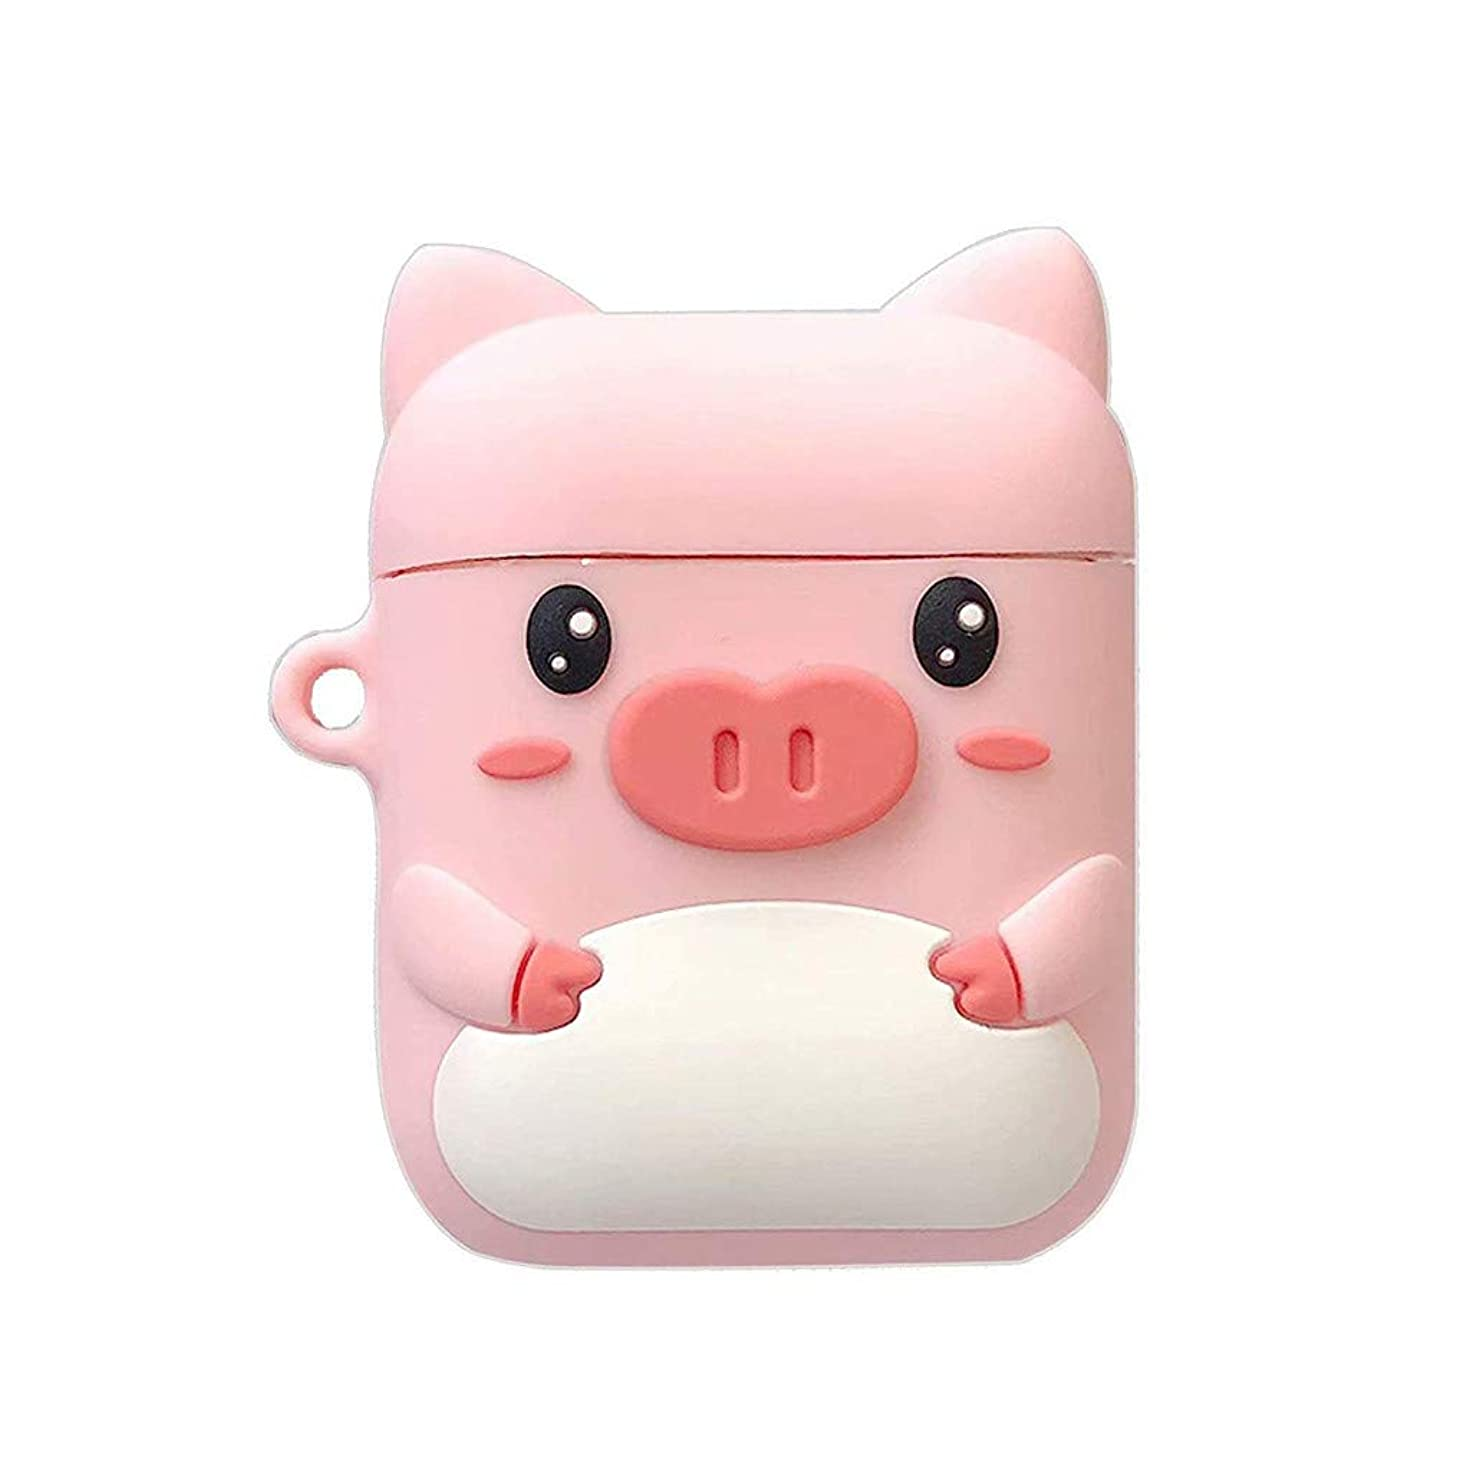 Gowersdee Funny Pig Waterproof Airpods Case 2 & 1 Cover Shockproof and Drop Proof air pods Protective Cover Soft Skin Silicone Sealing